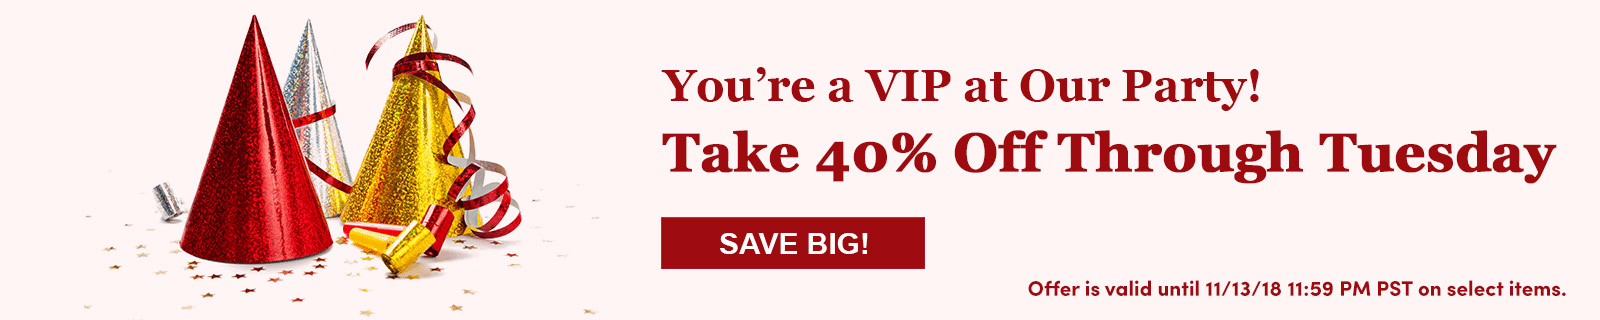 You're a VIP at Our Party! Take 40% Off Through Tuesday SAVE BIG